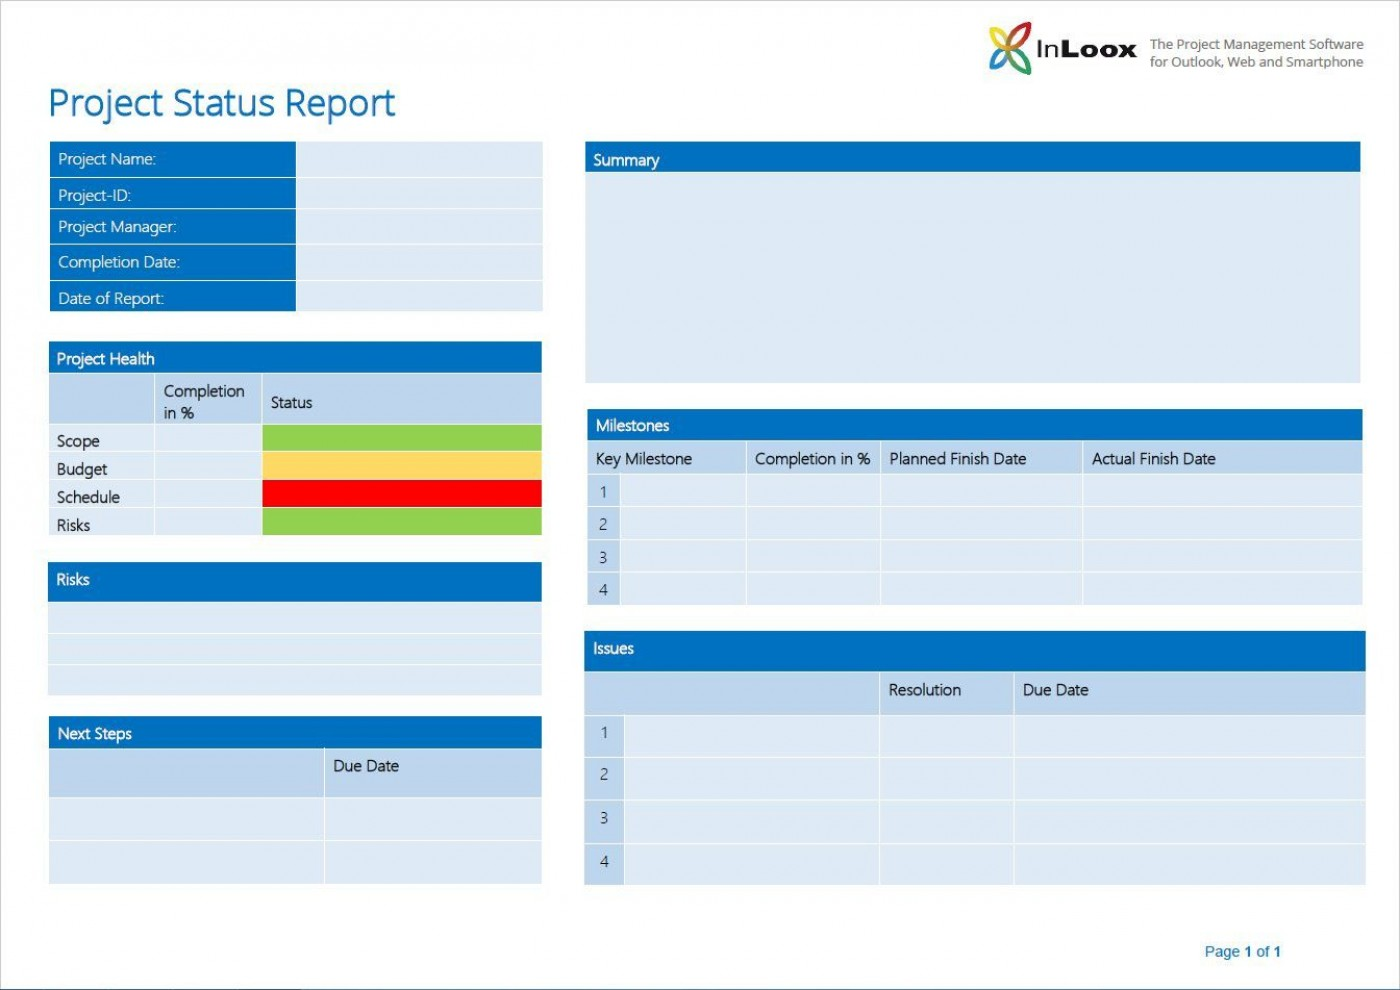 005 Top Project Management Progres Report Template Highest Clarity  Word Example Statu Template+powerpoint1400